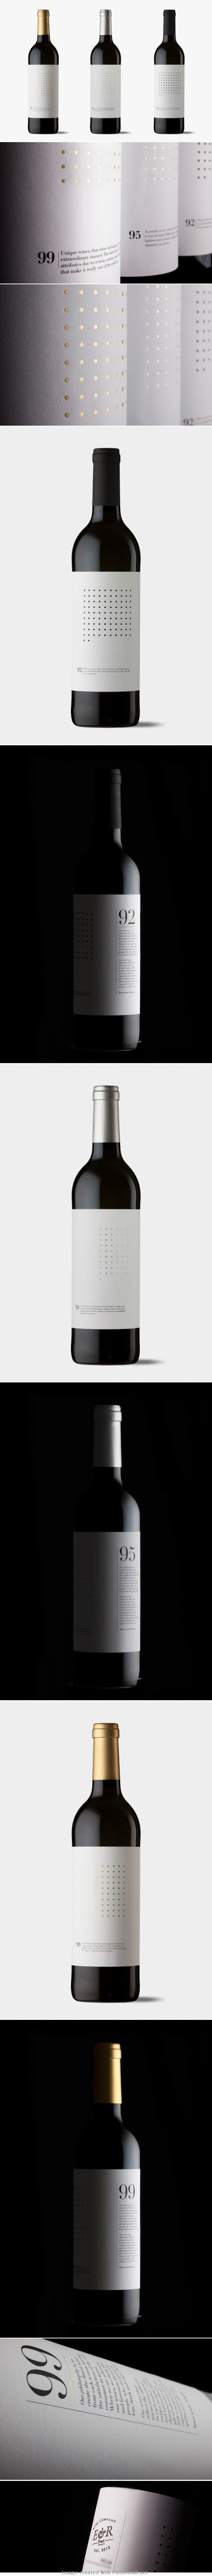 Dotted Grid Wines